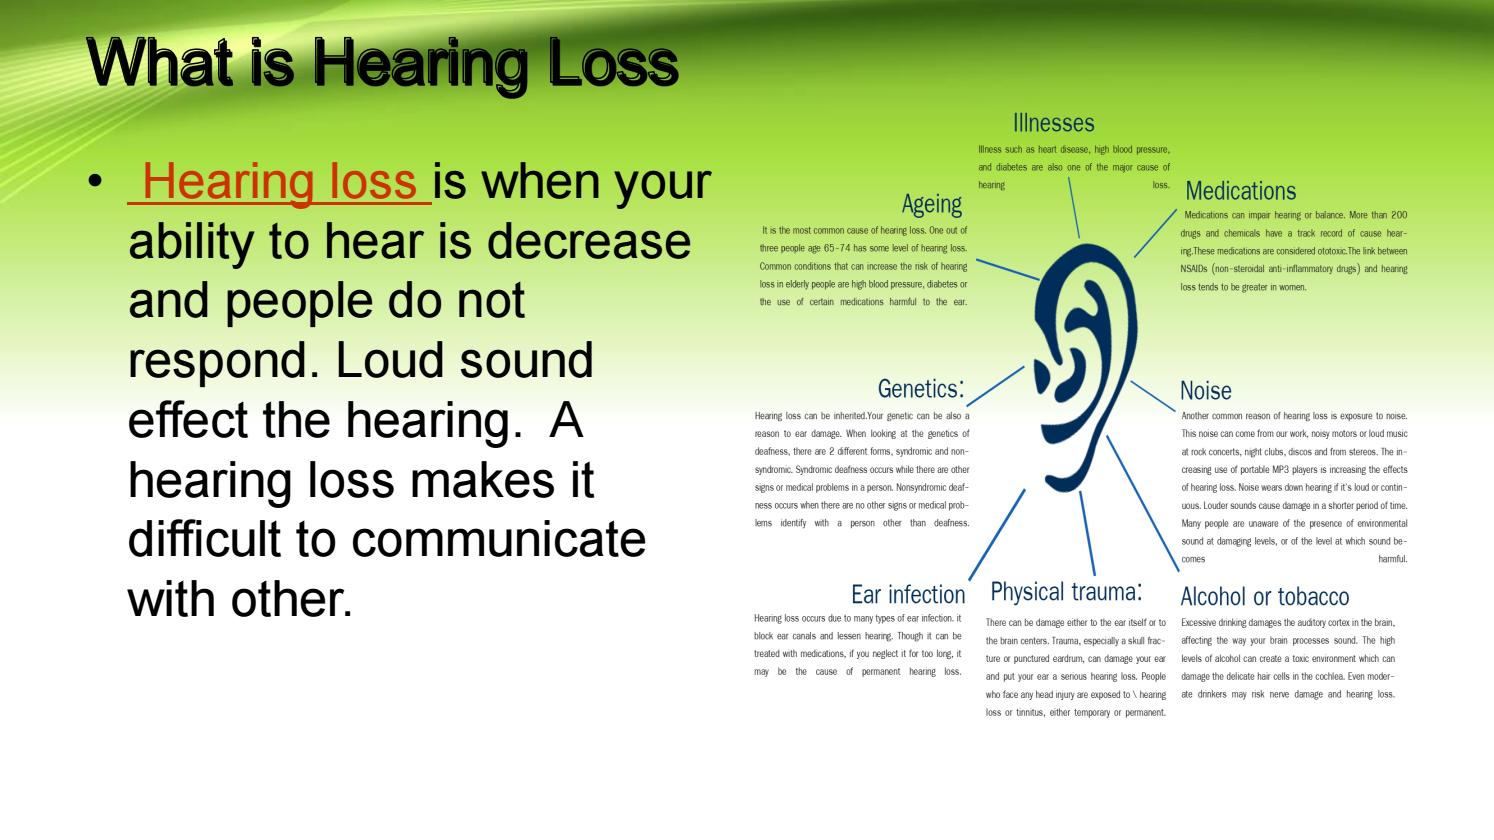 What is hearing loss and what are its types ? by anita